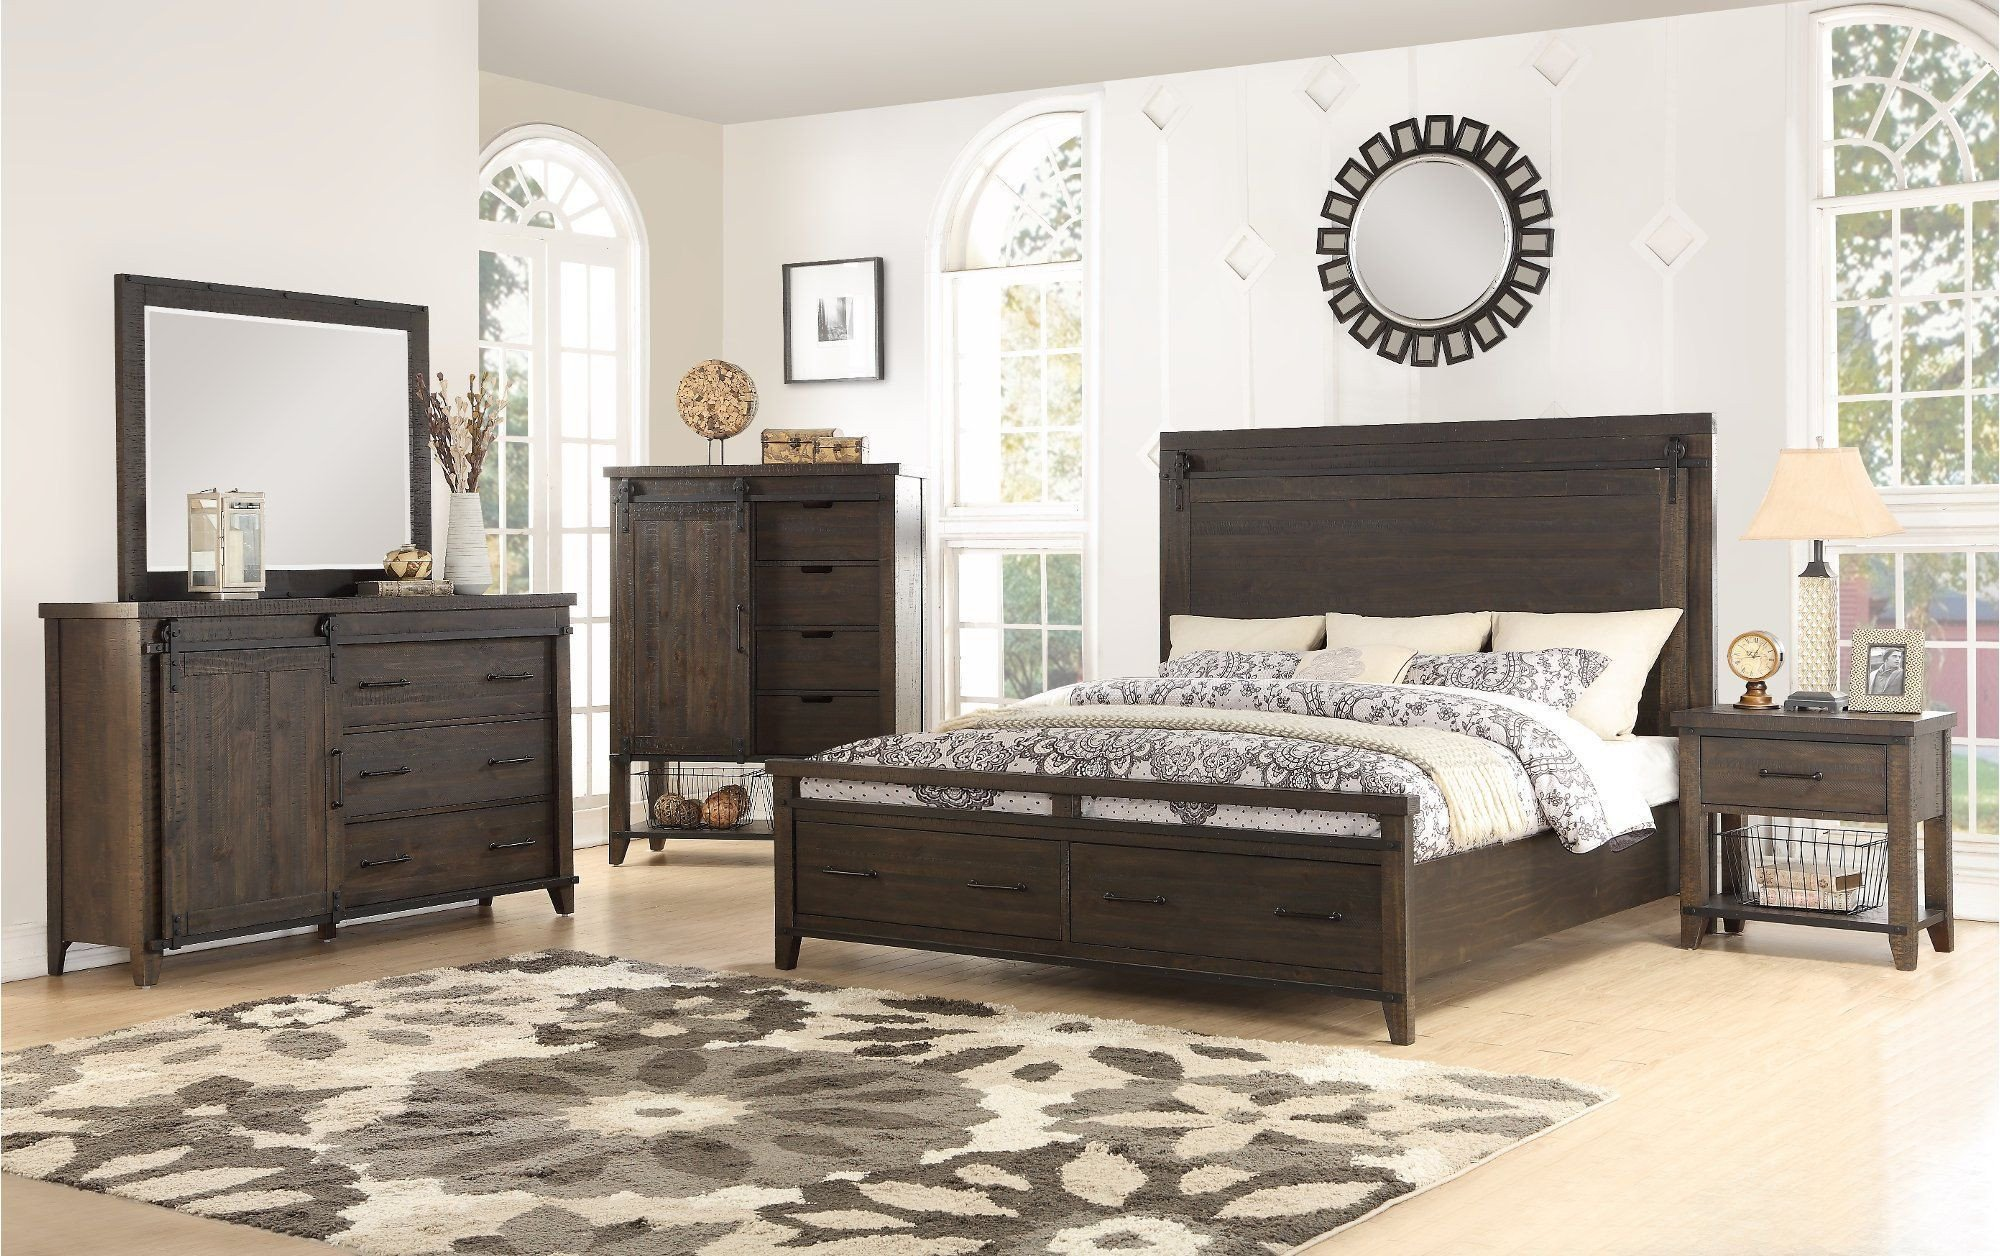 4 Piece Queen Bedroom Set Awesome Rustic Contemporary Brown 4 Piece King Bedroom Set Montana